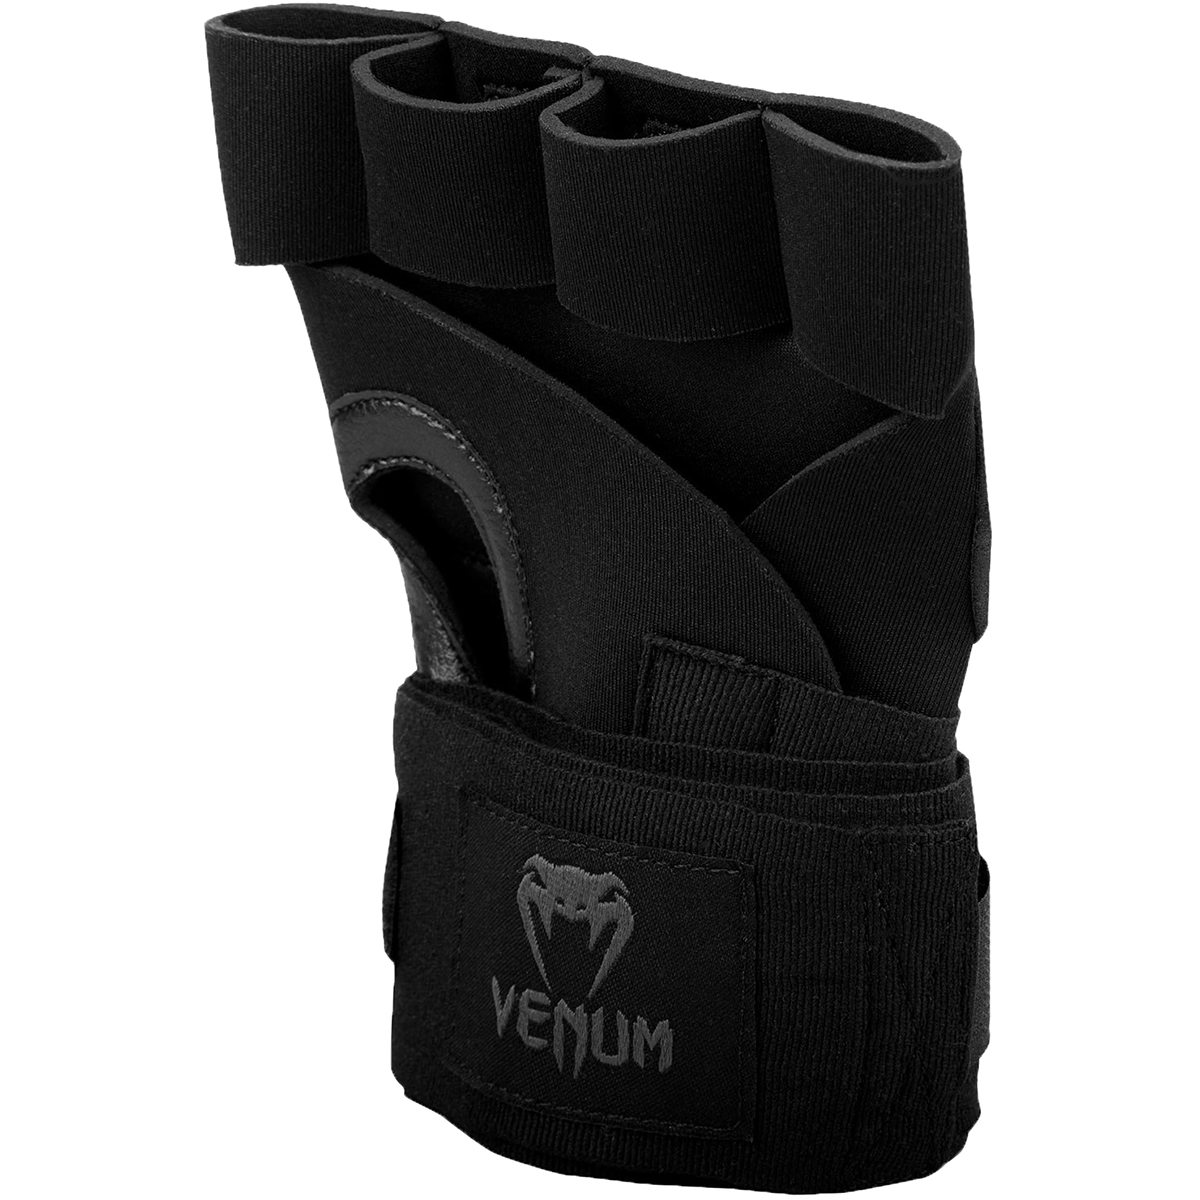 Venum-Kontact-Protective-Shock-Absorbing-Gel-MMA-Glove-Wraps thumbnail 4